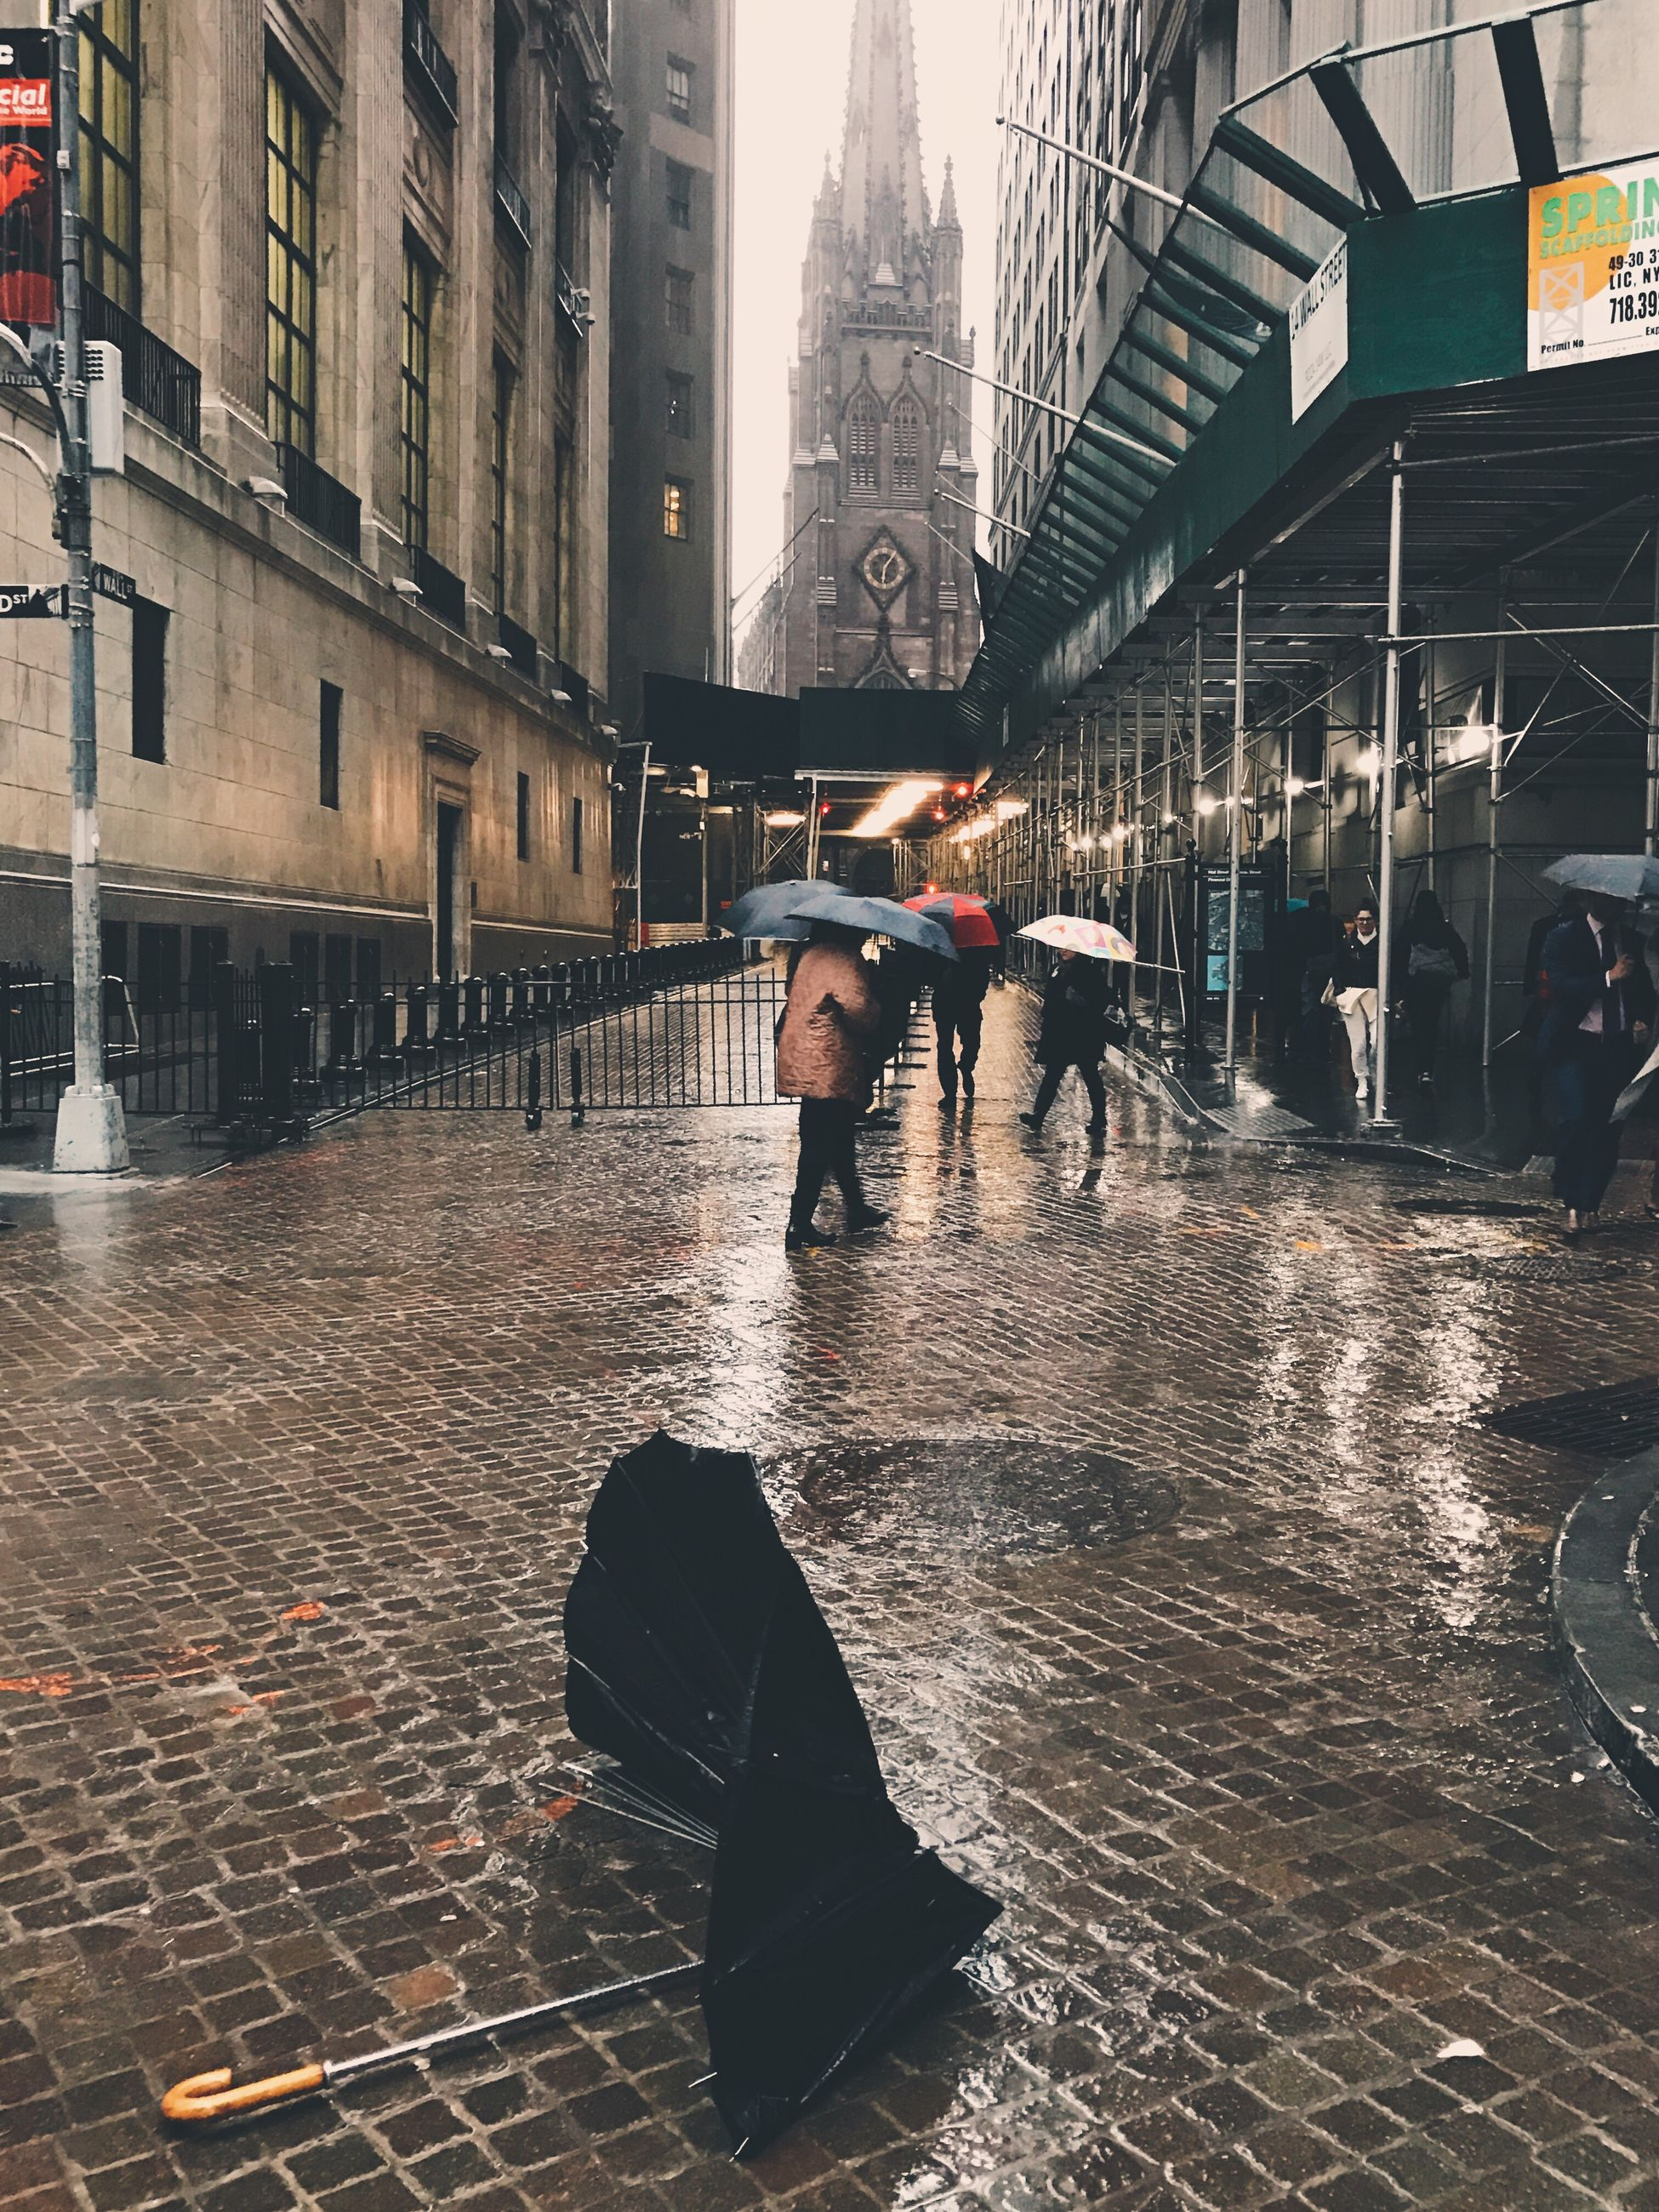 architecture, built structure, real people, building exterior, city, wet, street, weather, water, protection, full length, city life, men, walking, lifestyles, day, outdoors, travel destinations, women, under, people